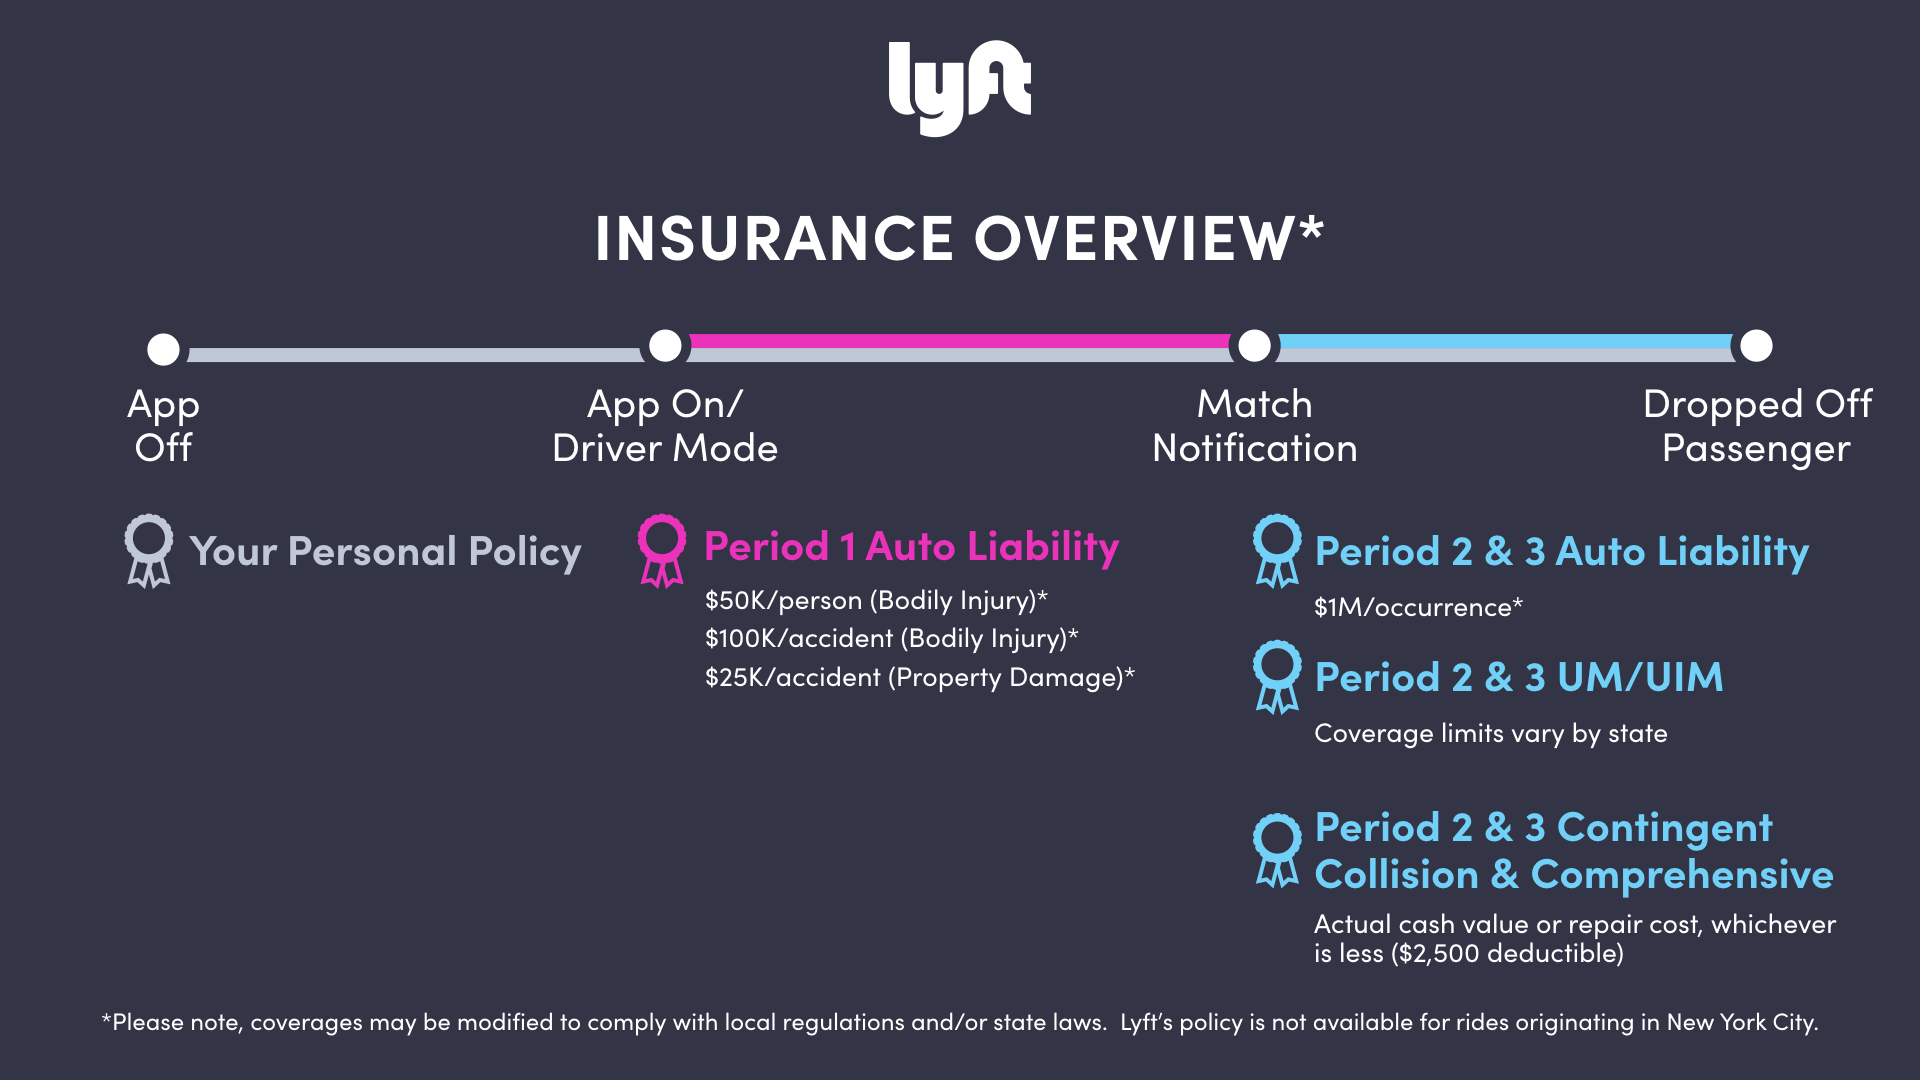 Lyft Insurance Overview